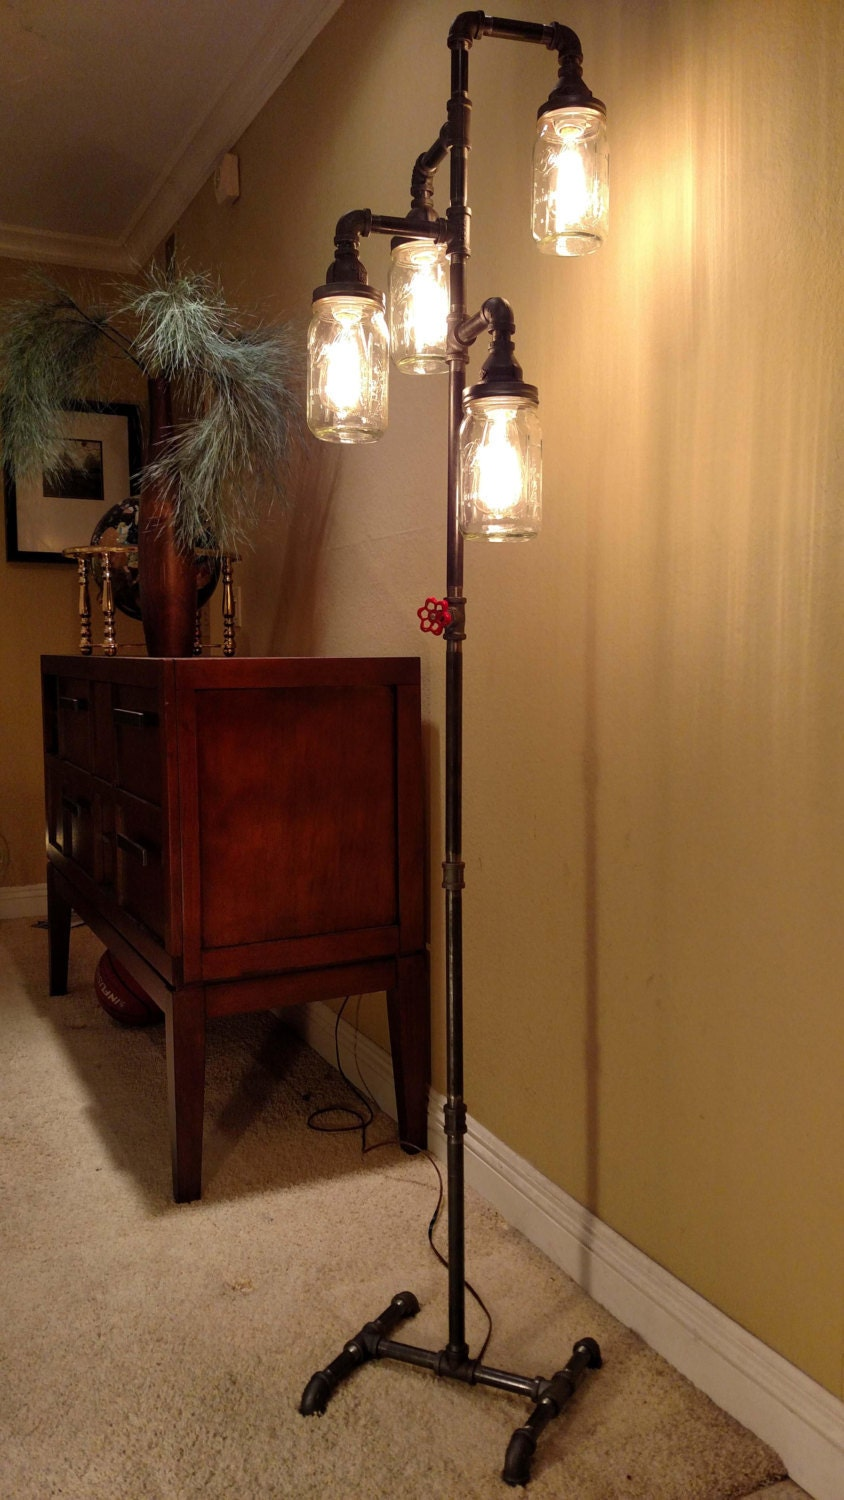 Pipe floor lamp 4 fixture living room steampunk mason jar does for Floor lamps for living room